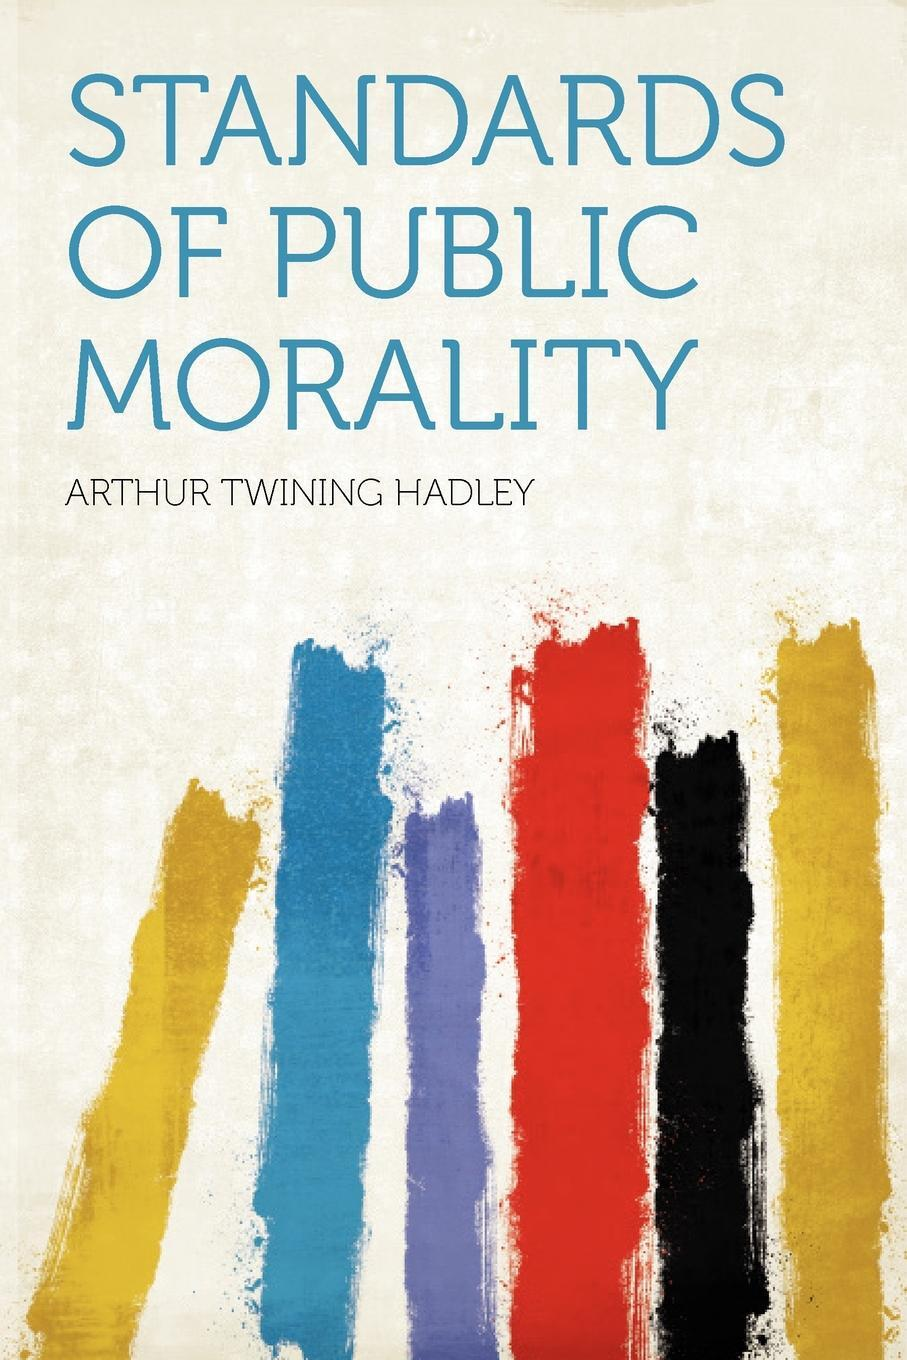 Arthur Twining Hadley. Standards of Public Morality